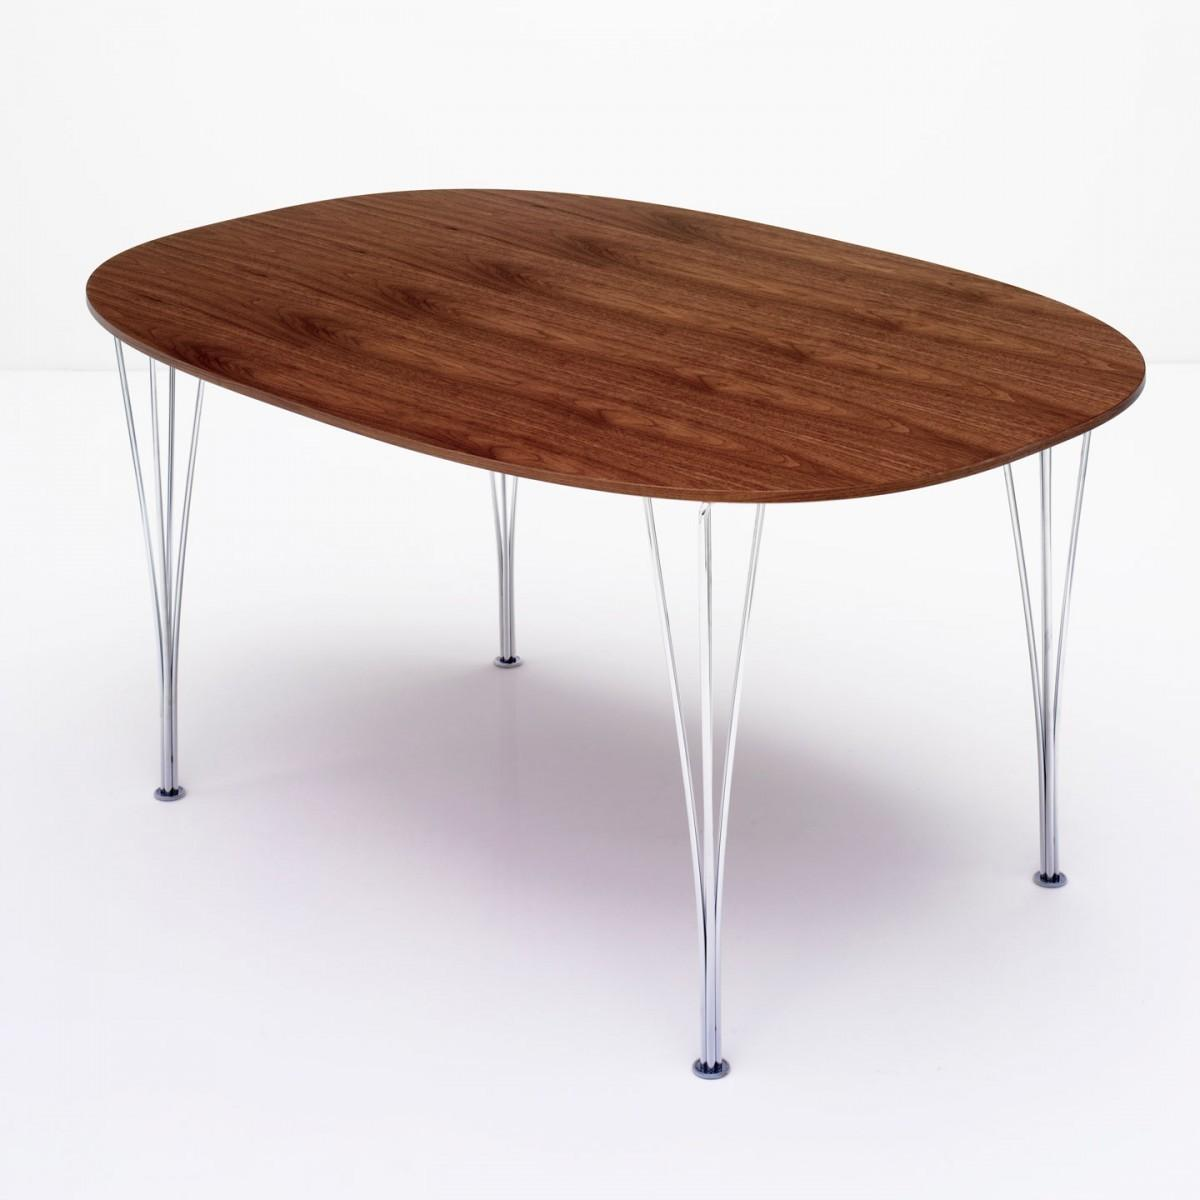 Super Elliptical Table Dining Tables